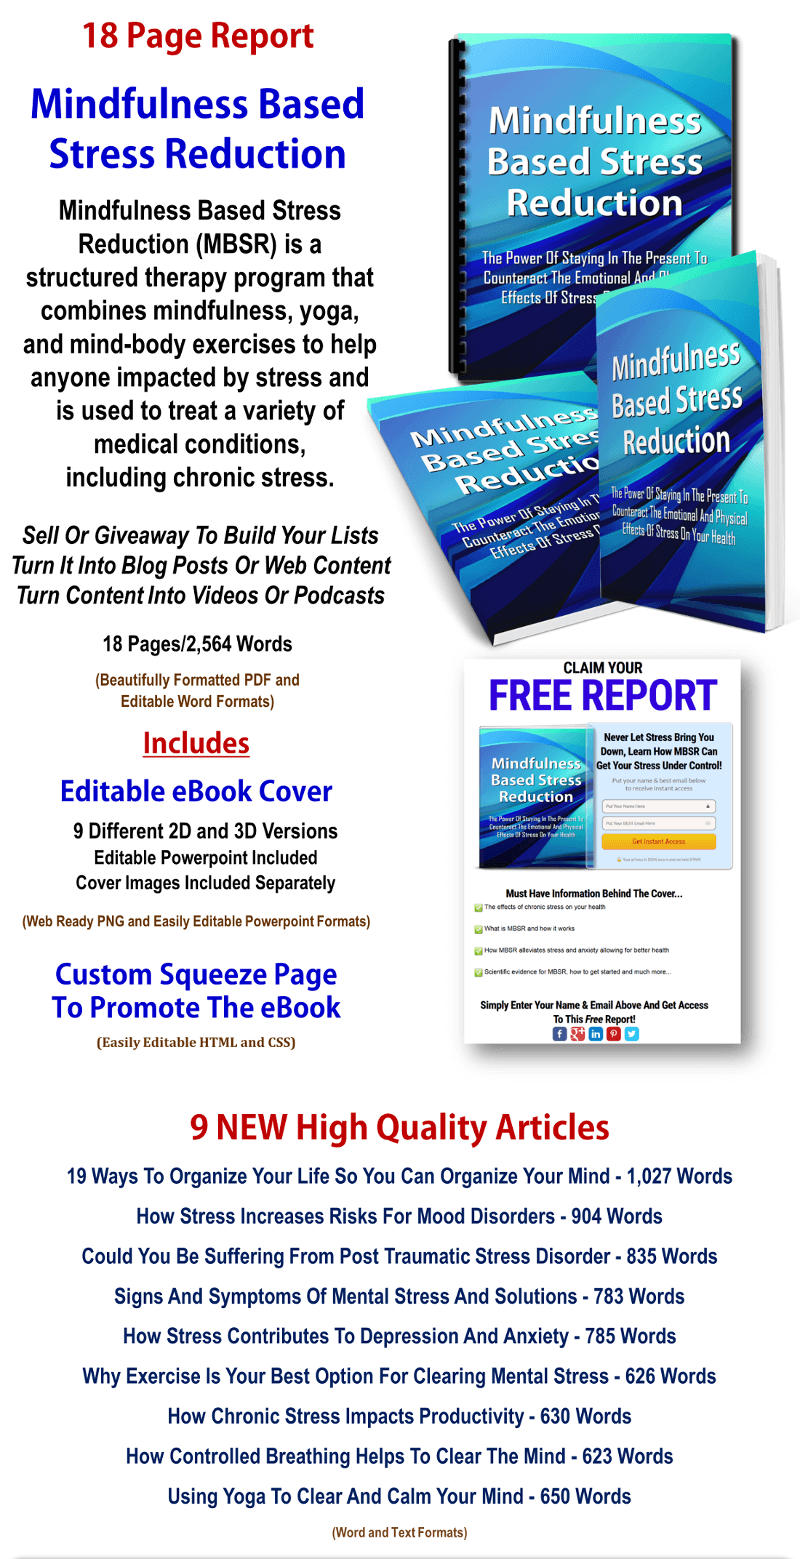 Mindfulness Based Stress Reduction Report And Articles PLR Pack